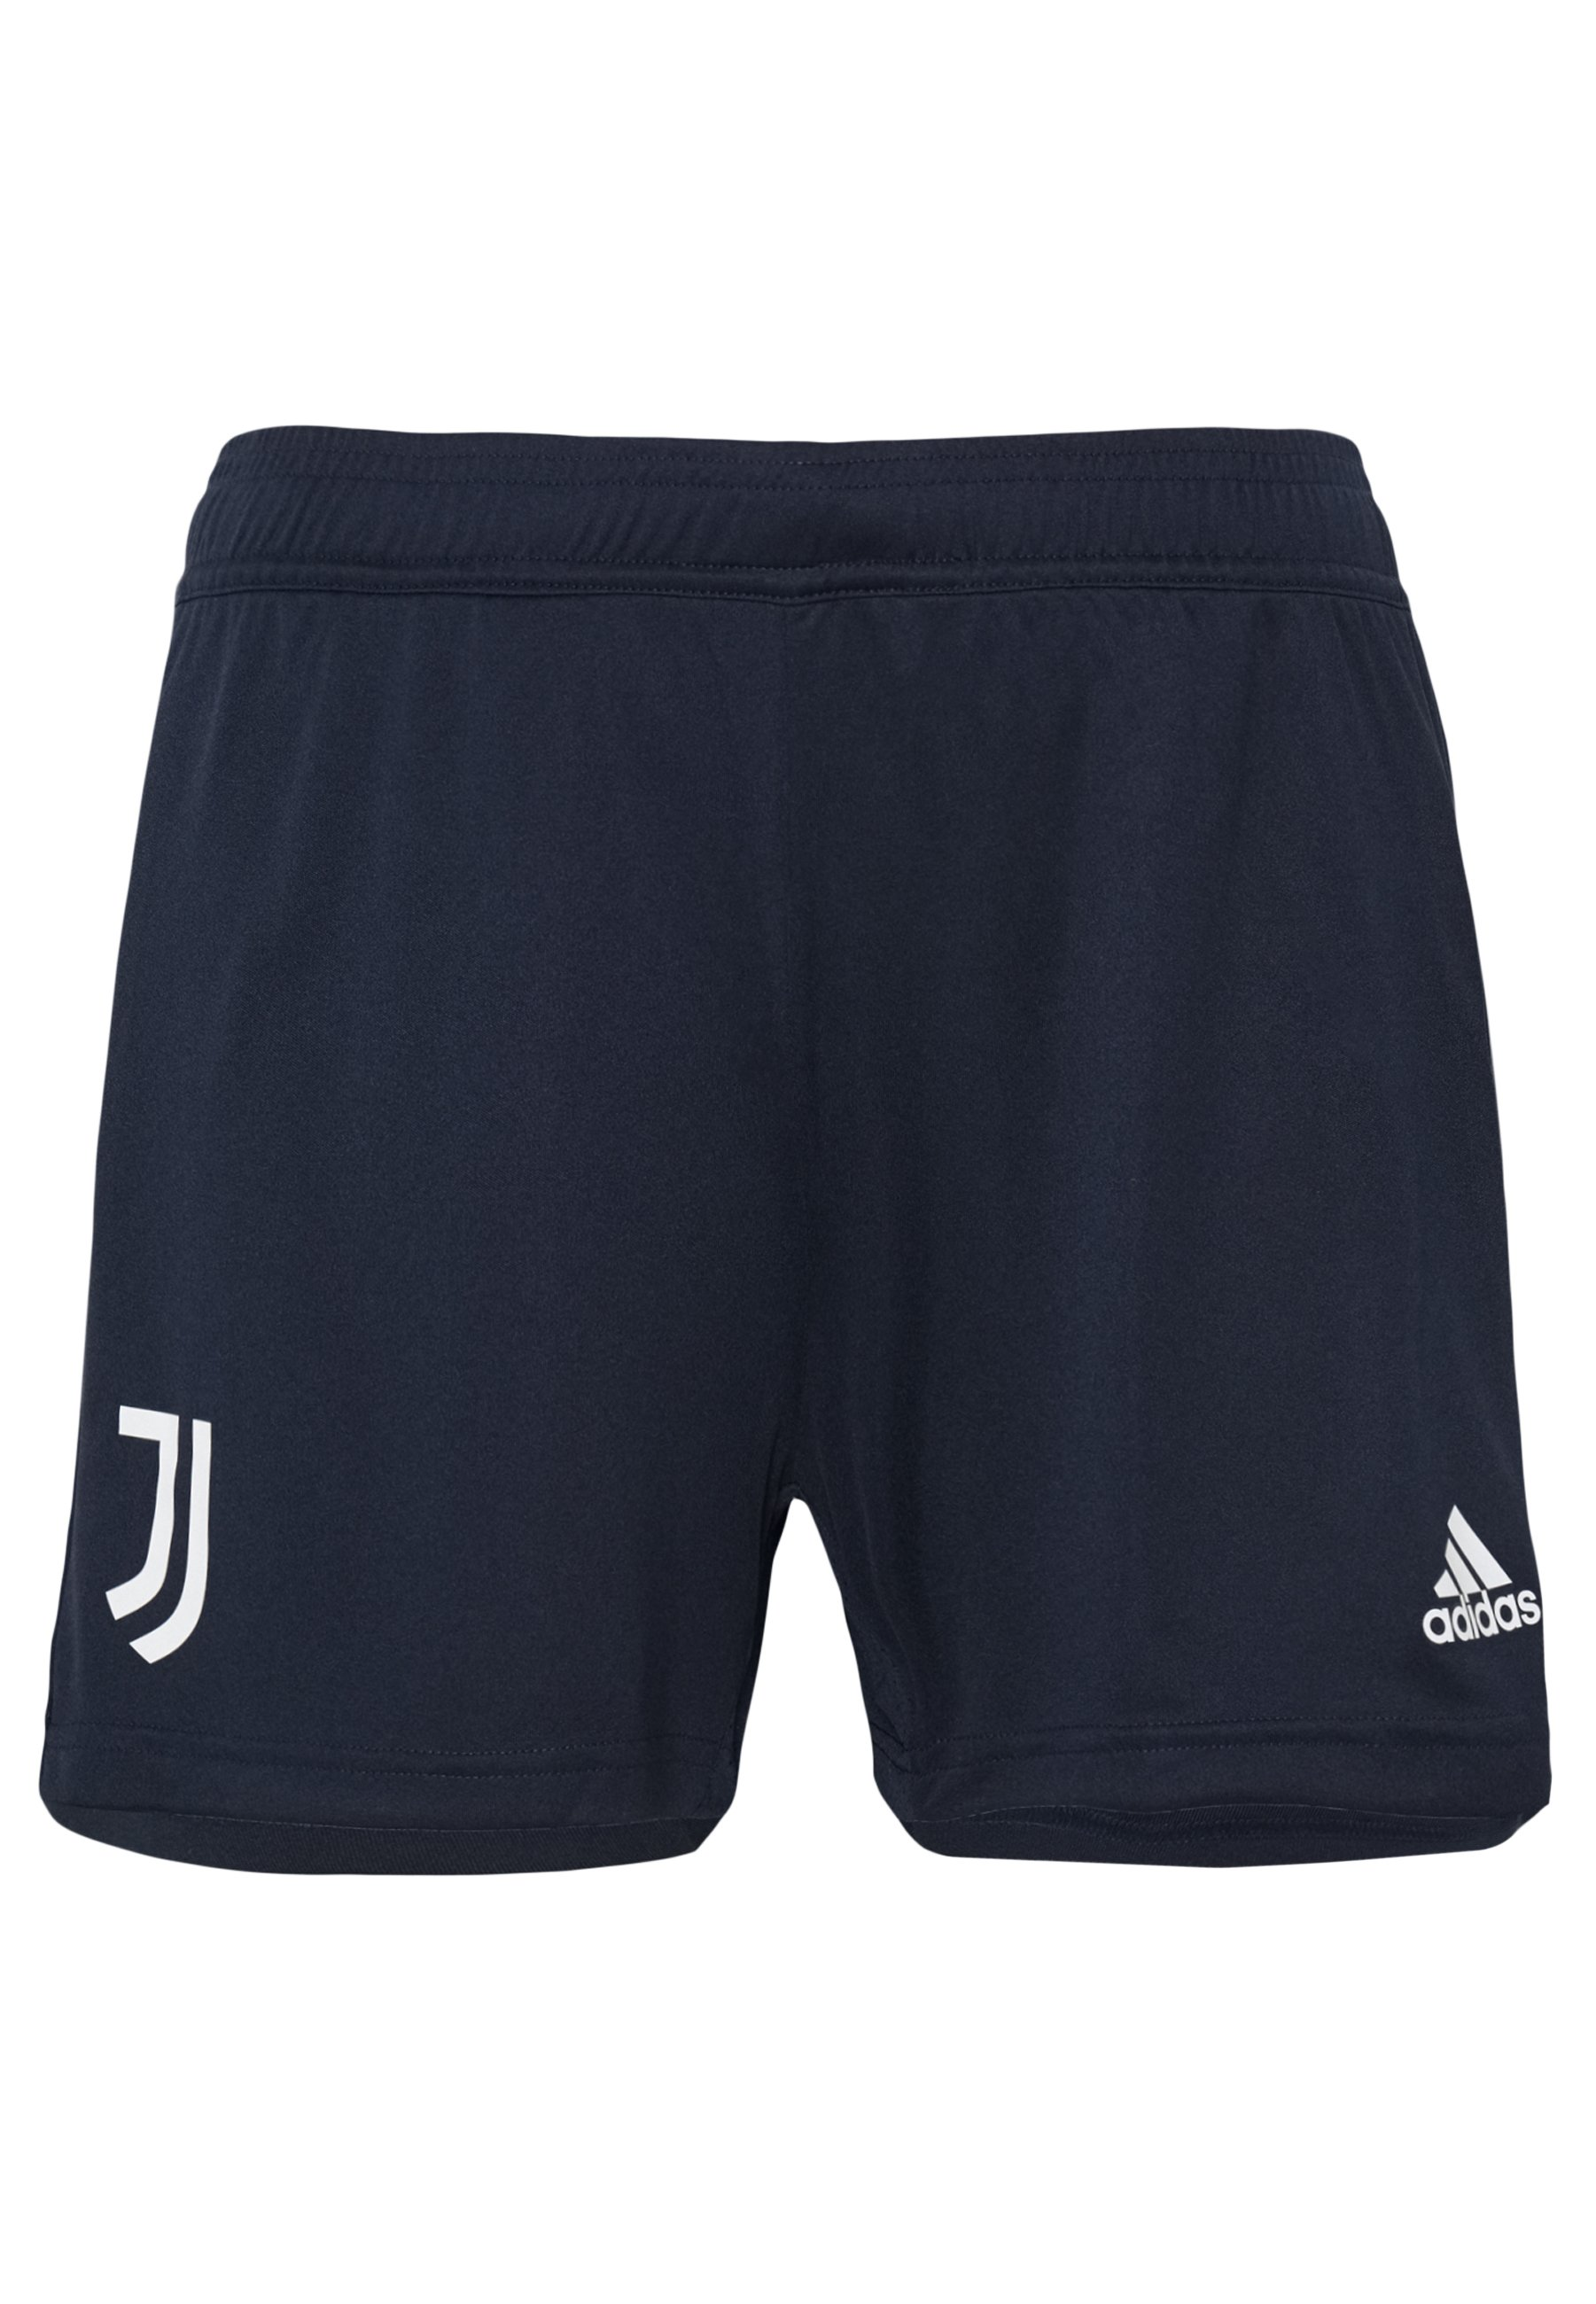 adidas Performance JUVENTUS AEROREADY SPORTS FOOTBALL